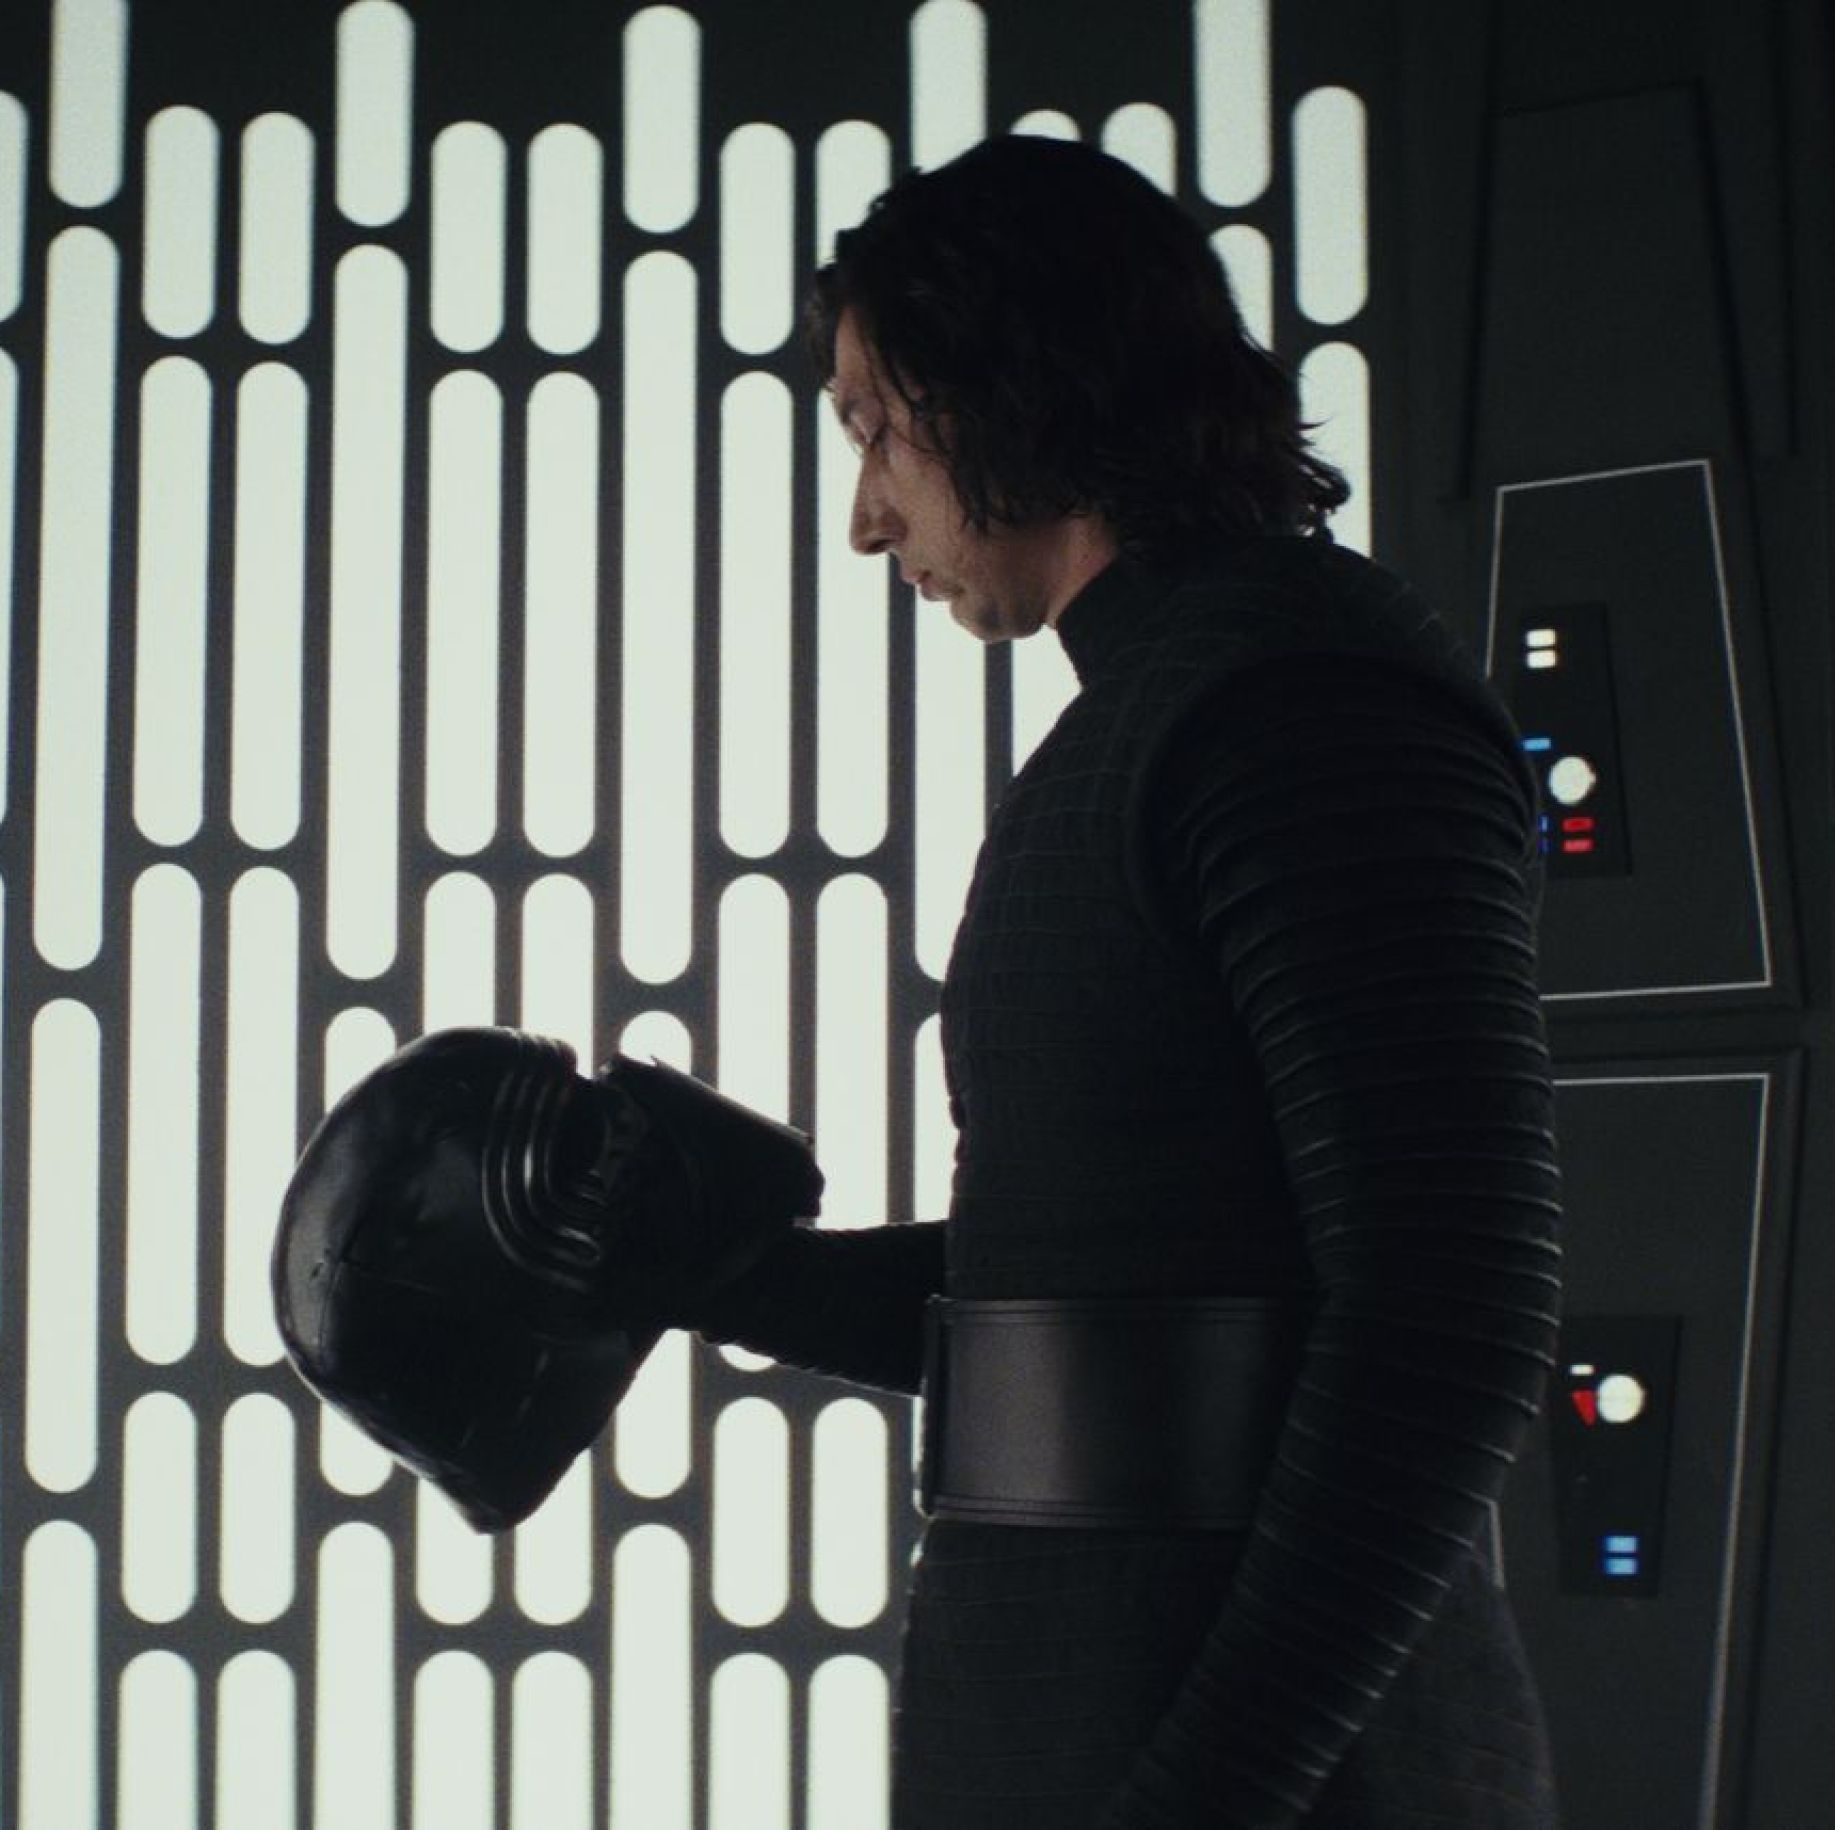 A New Star Wars 9 Leak Promises A Rather Disgusting Scene Between Kylo Ren And Darth Vader